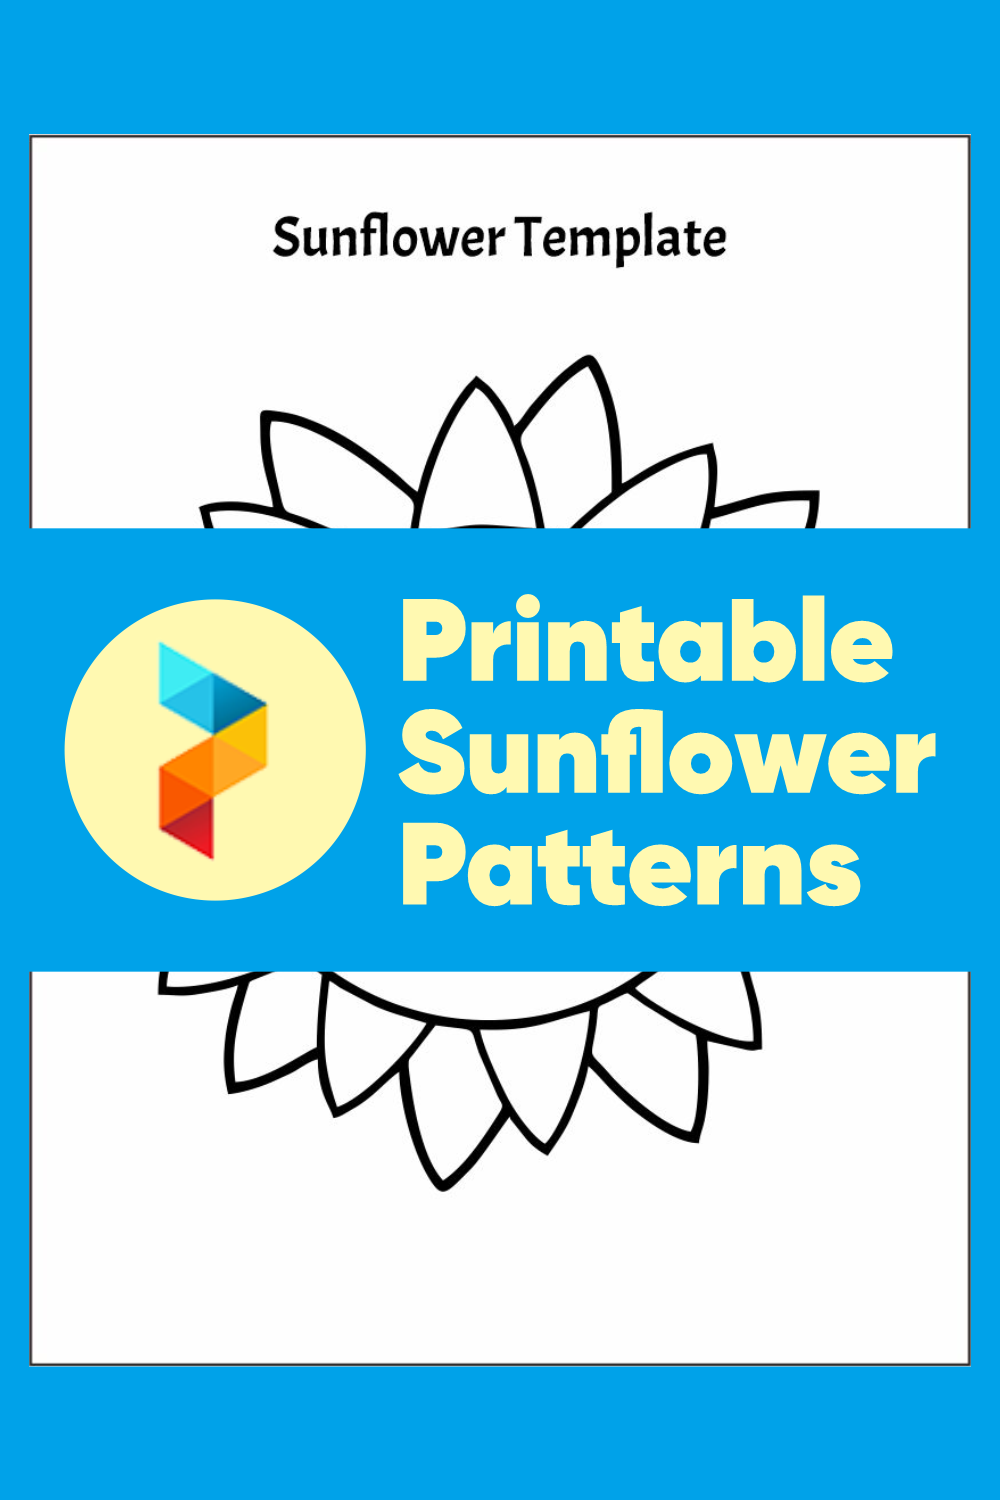 Printable Sunflower Patterns